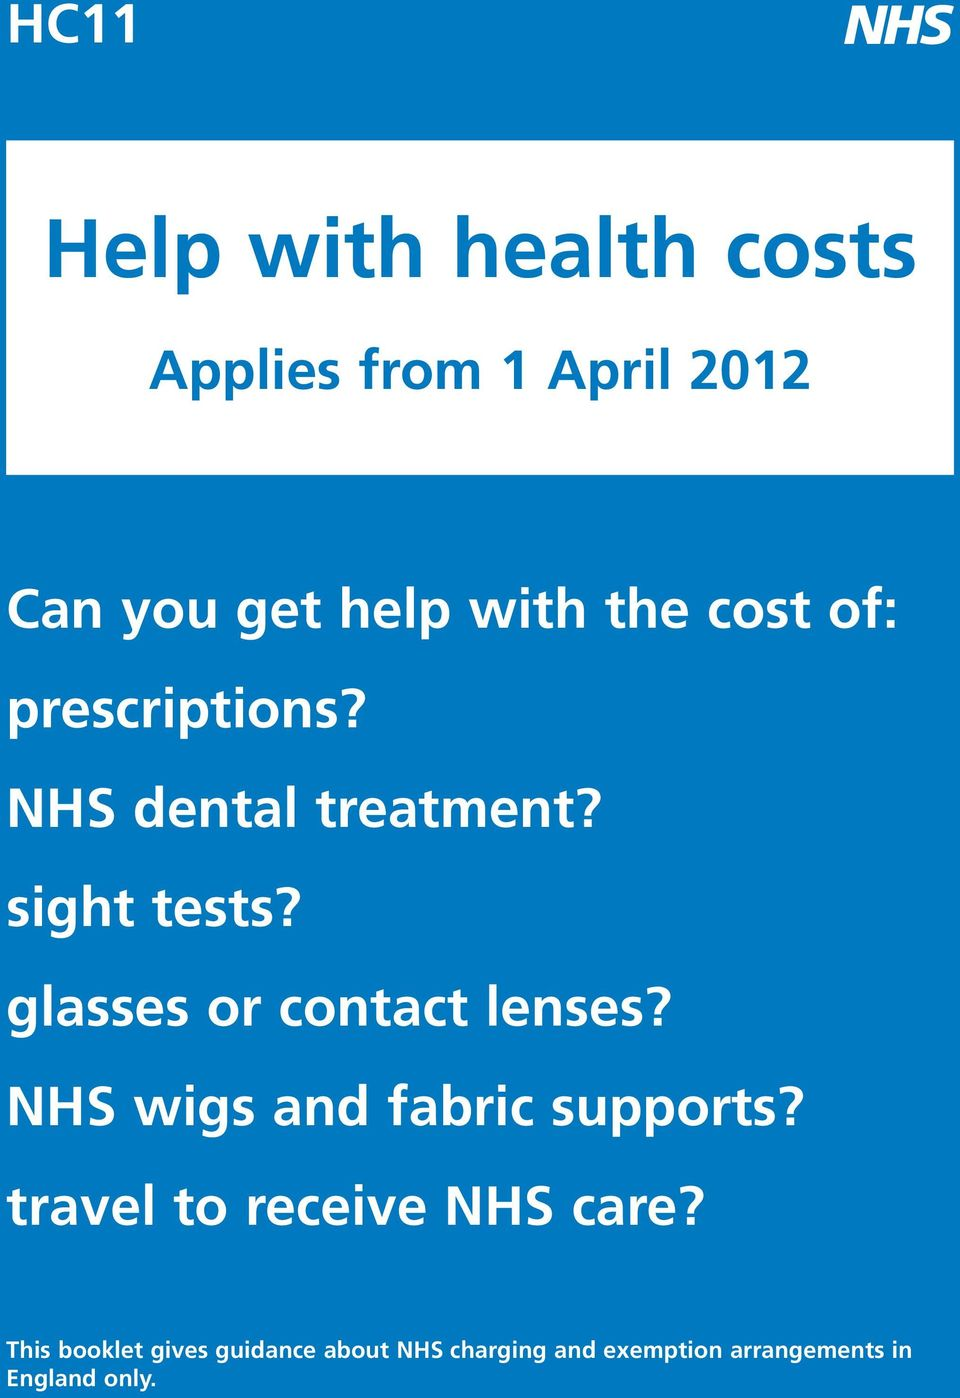 glasses or contact lenses? NHS wigs and fabric supports?